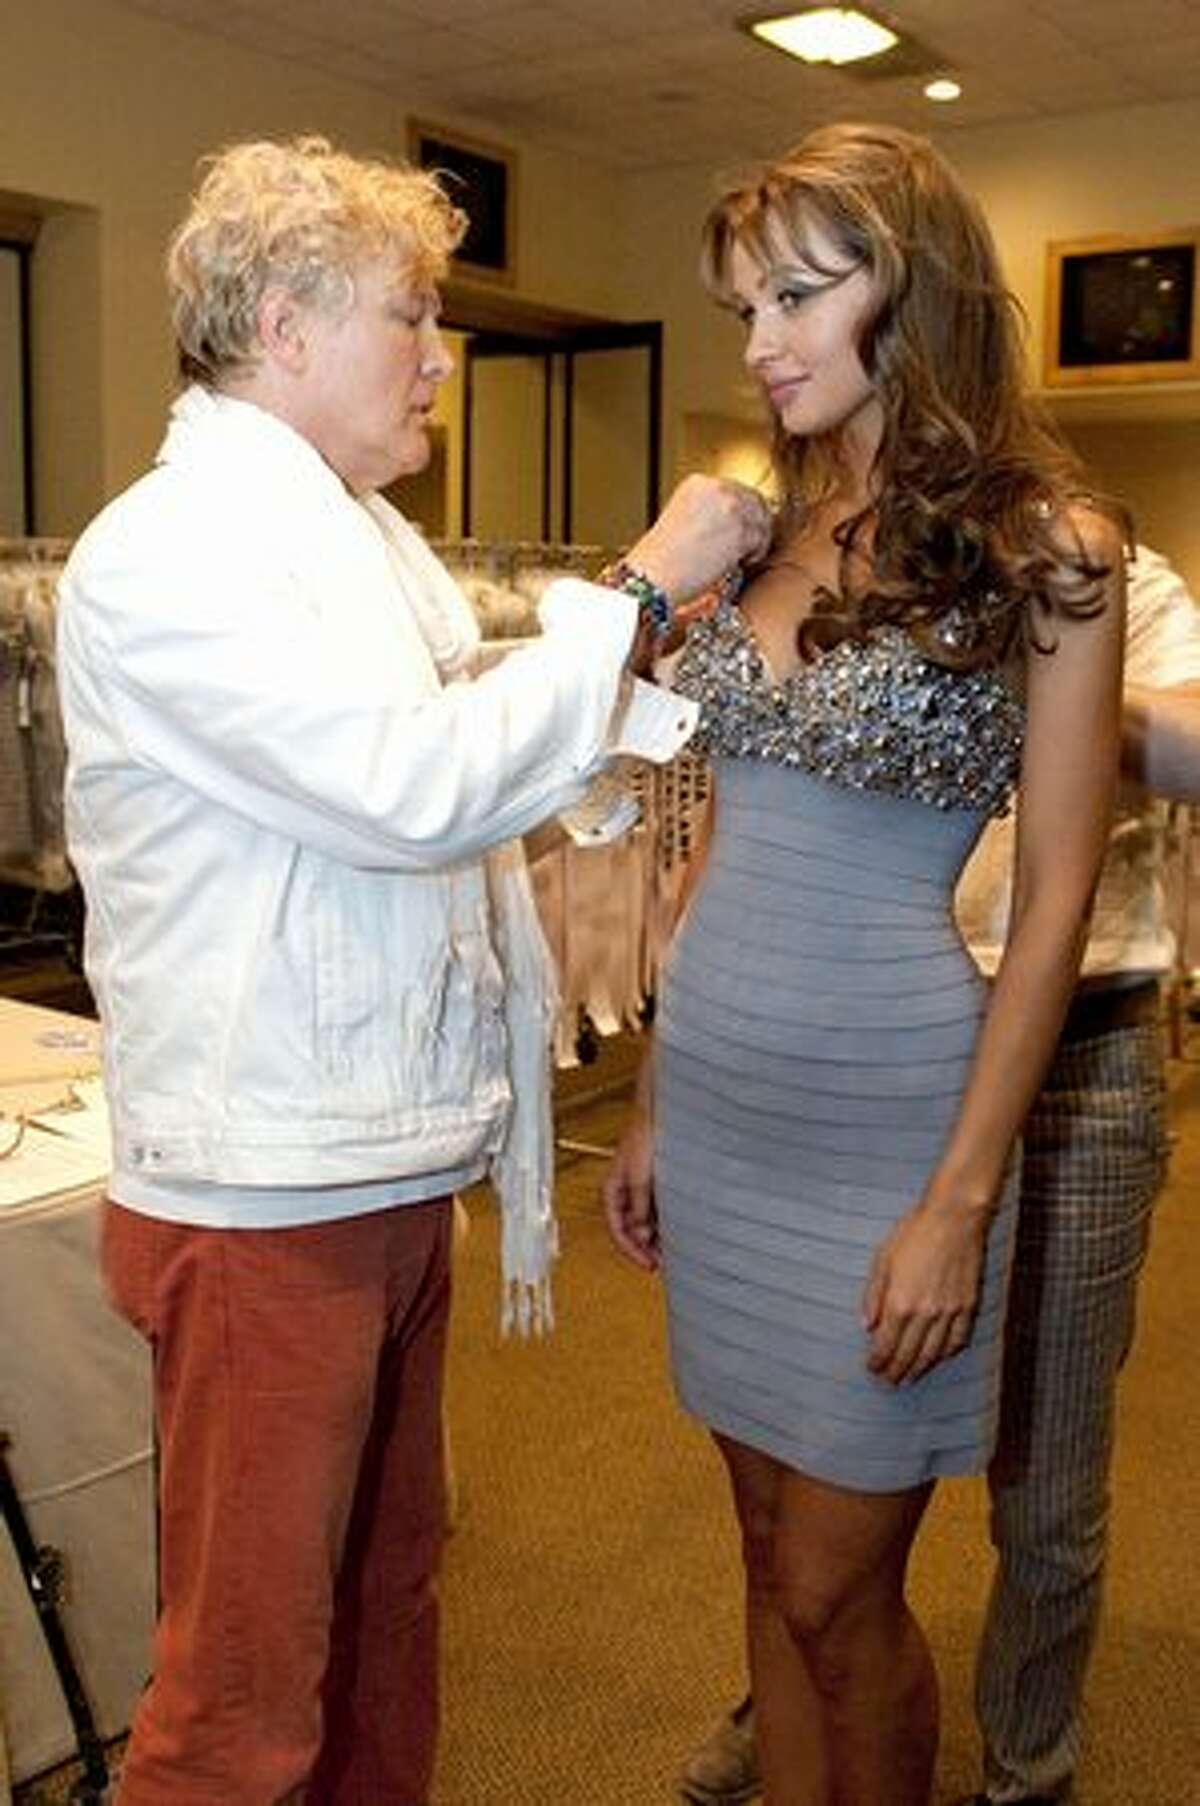 Costumer David Profeta fits Anna Poslavska, Miss Ukraine 2010, in a Sherri Hill dress as she starts the registration and fitting process in preparation for the Miss Universe 2010 competition at Mandalay Bay Hotel and Casino in Las Vegas on Saturday, Aug. 7, 2010. Eighty-three contestants, who began arriving in Las Vegas on Saturday, will spend the next two weeks attending civic events and preparing for the finals, at which a new Miss Universe will be crowned on Aug. 23.